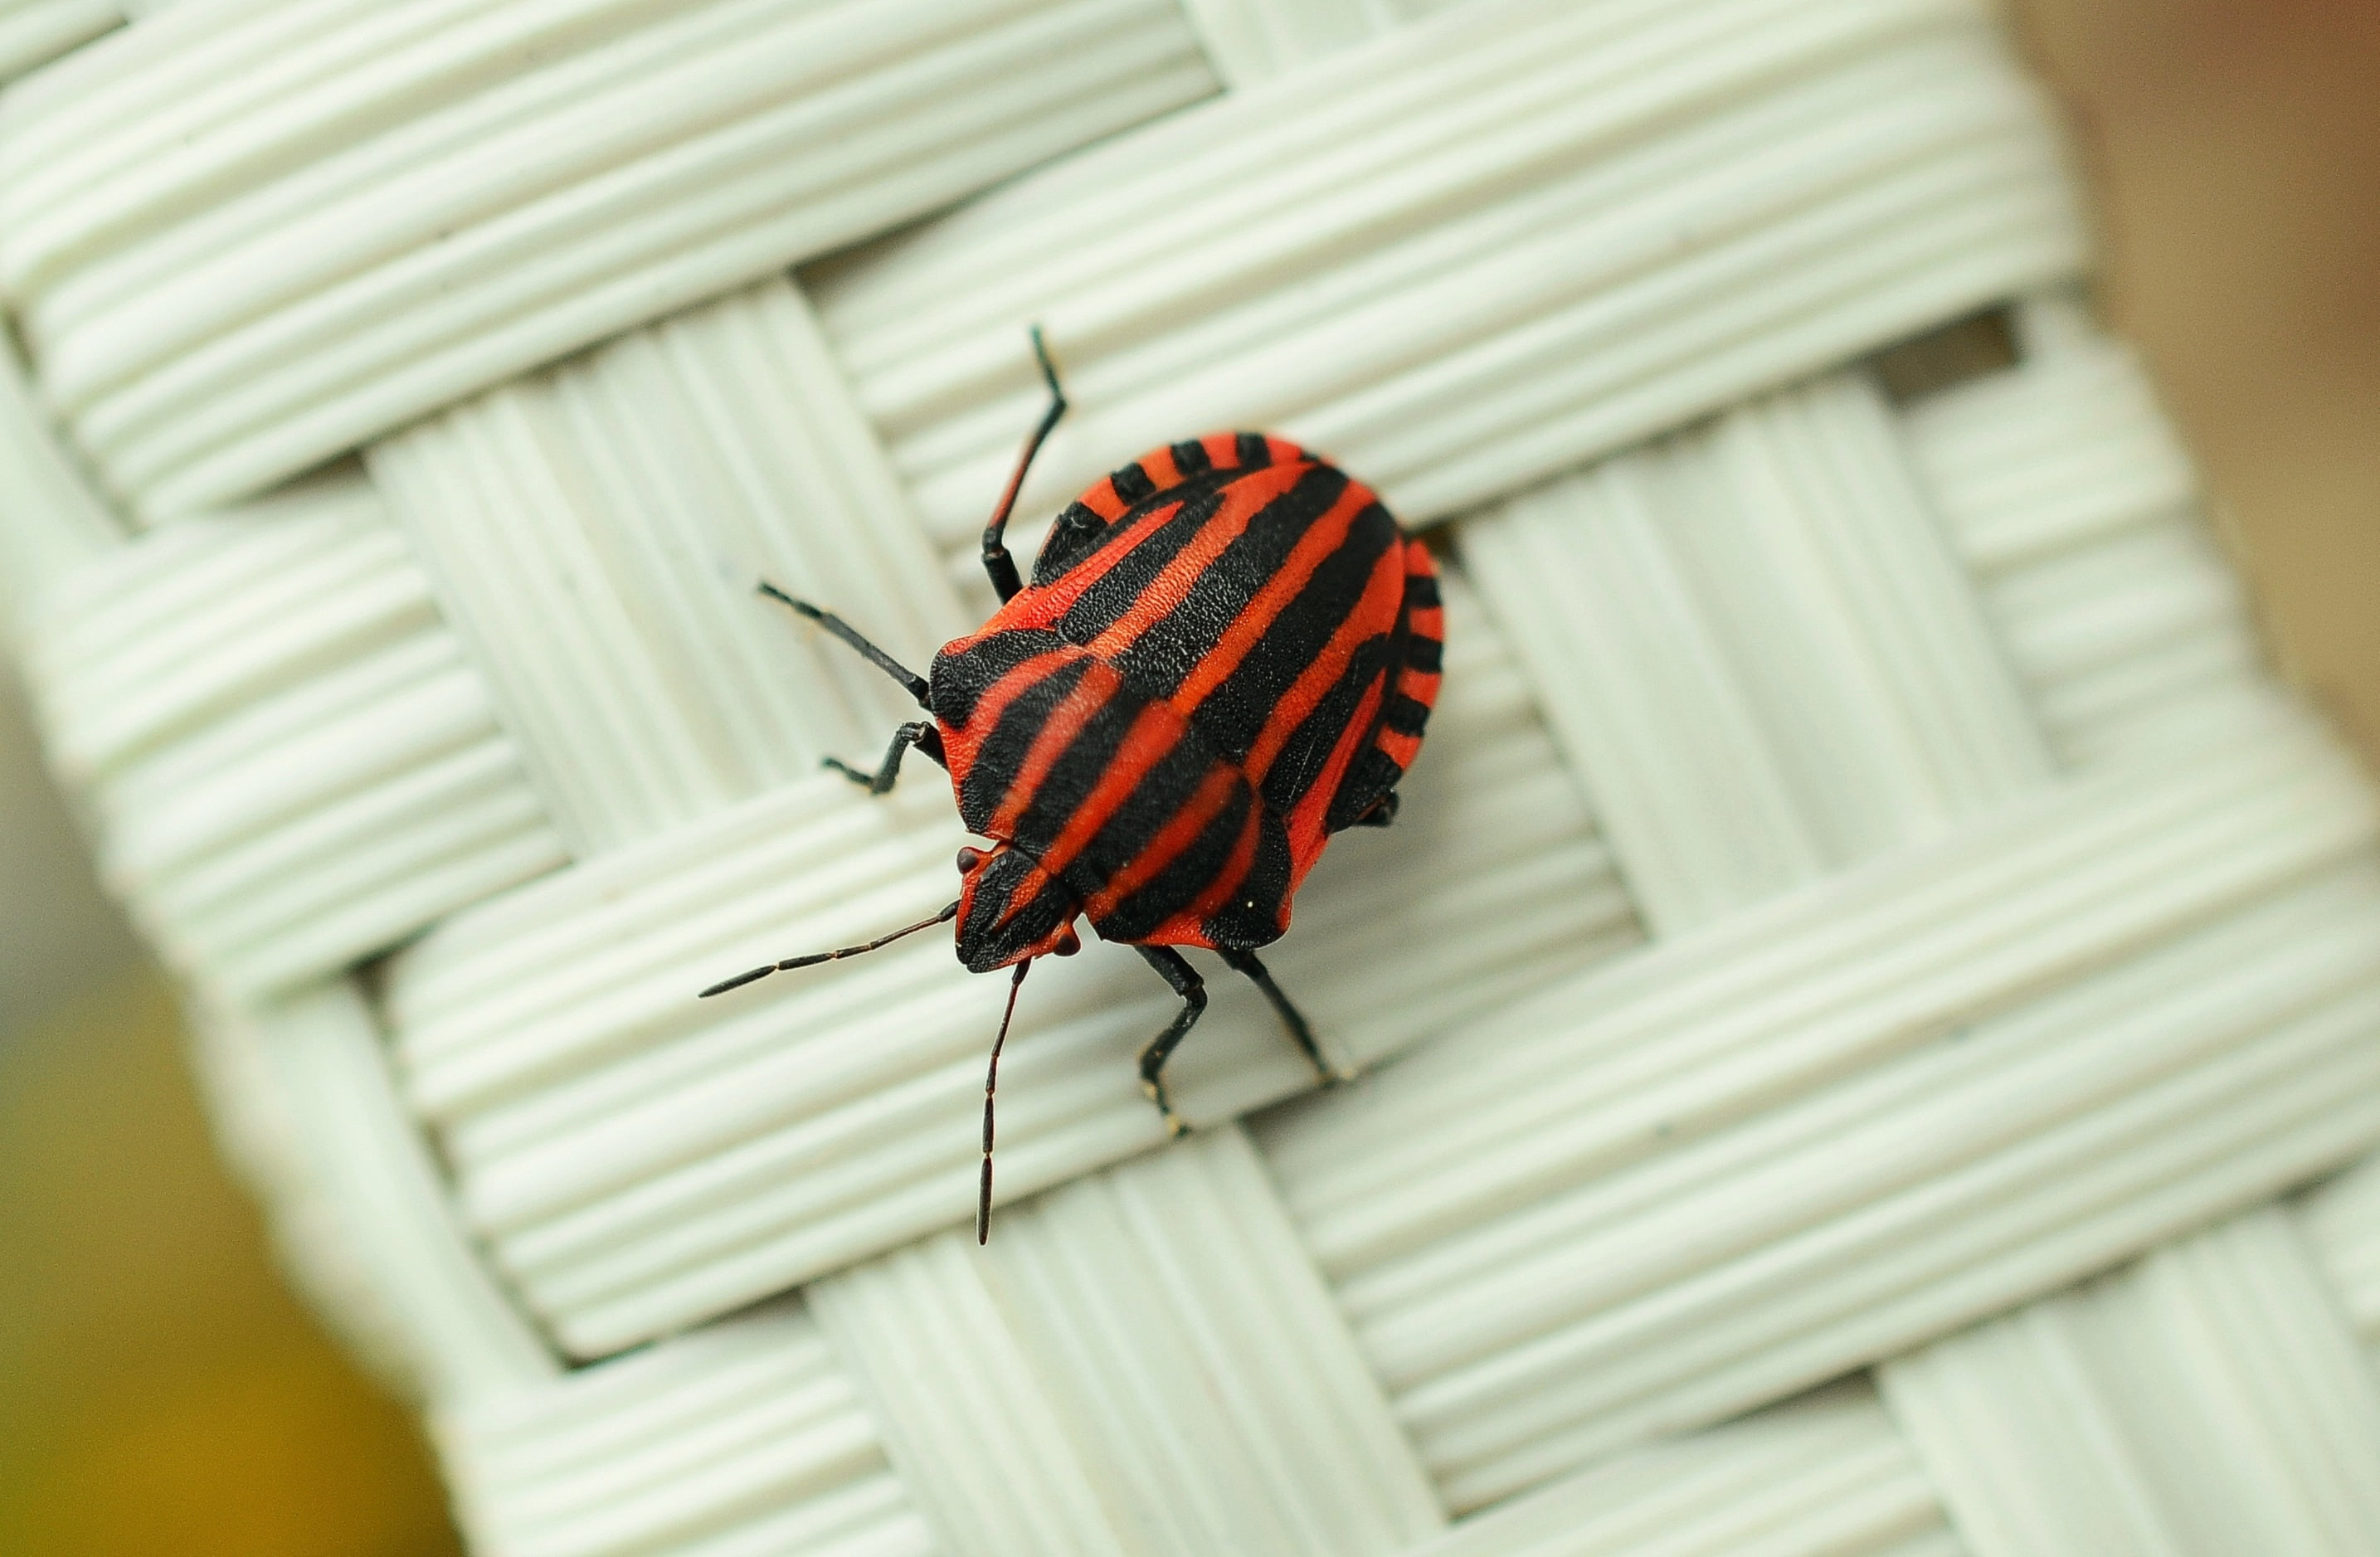 Red and black banded stink bug HD wallpapers